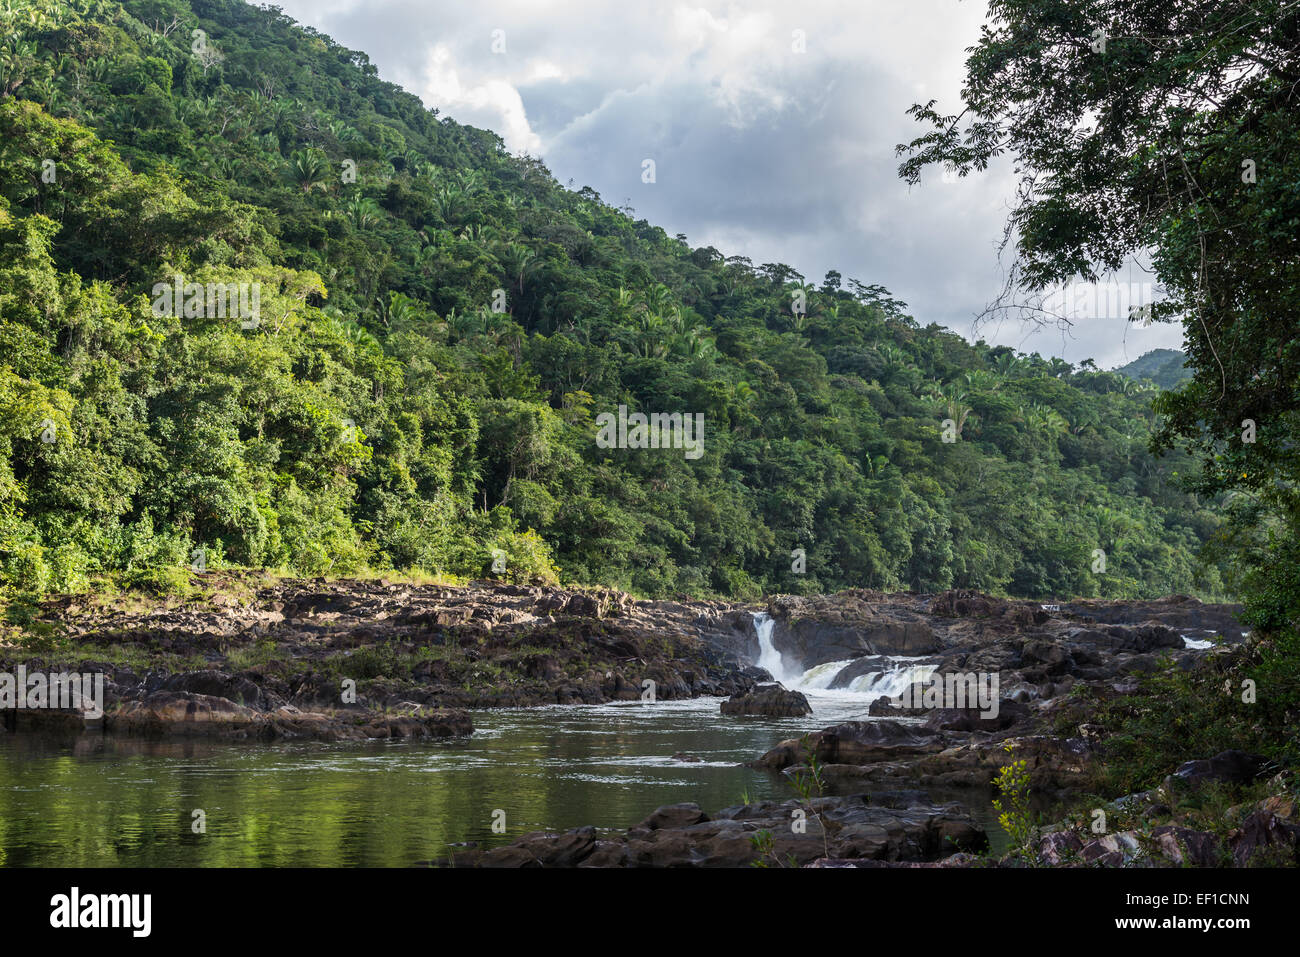 Vaca Falls on the Macal River running through lush jungles of Belize, Central America. - Stock Image